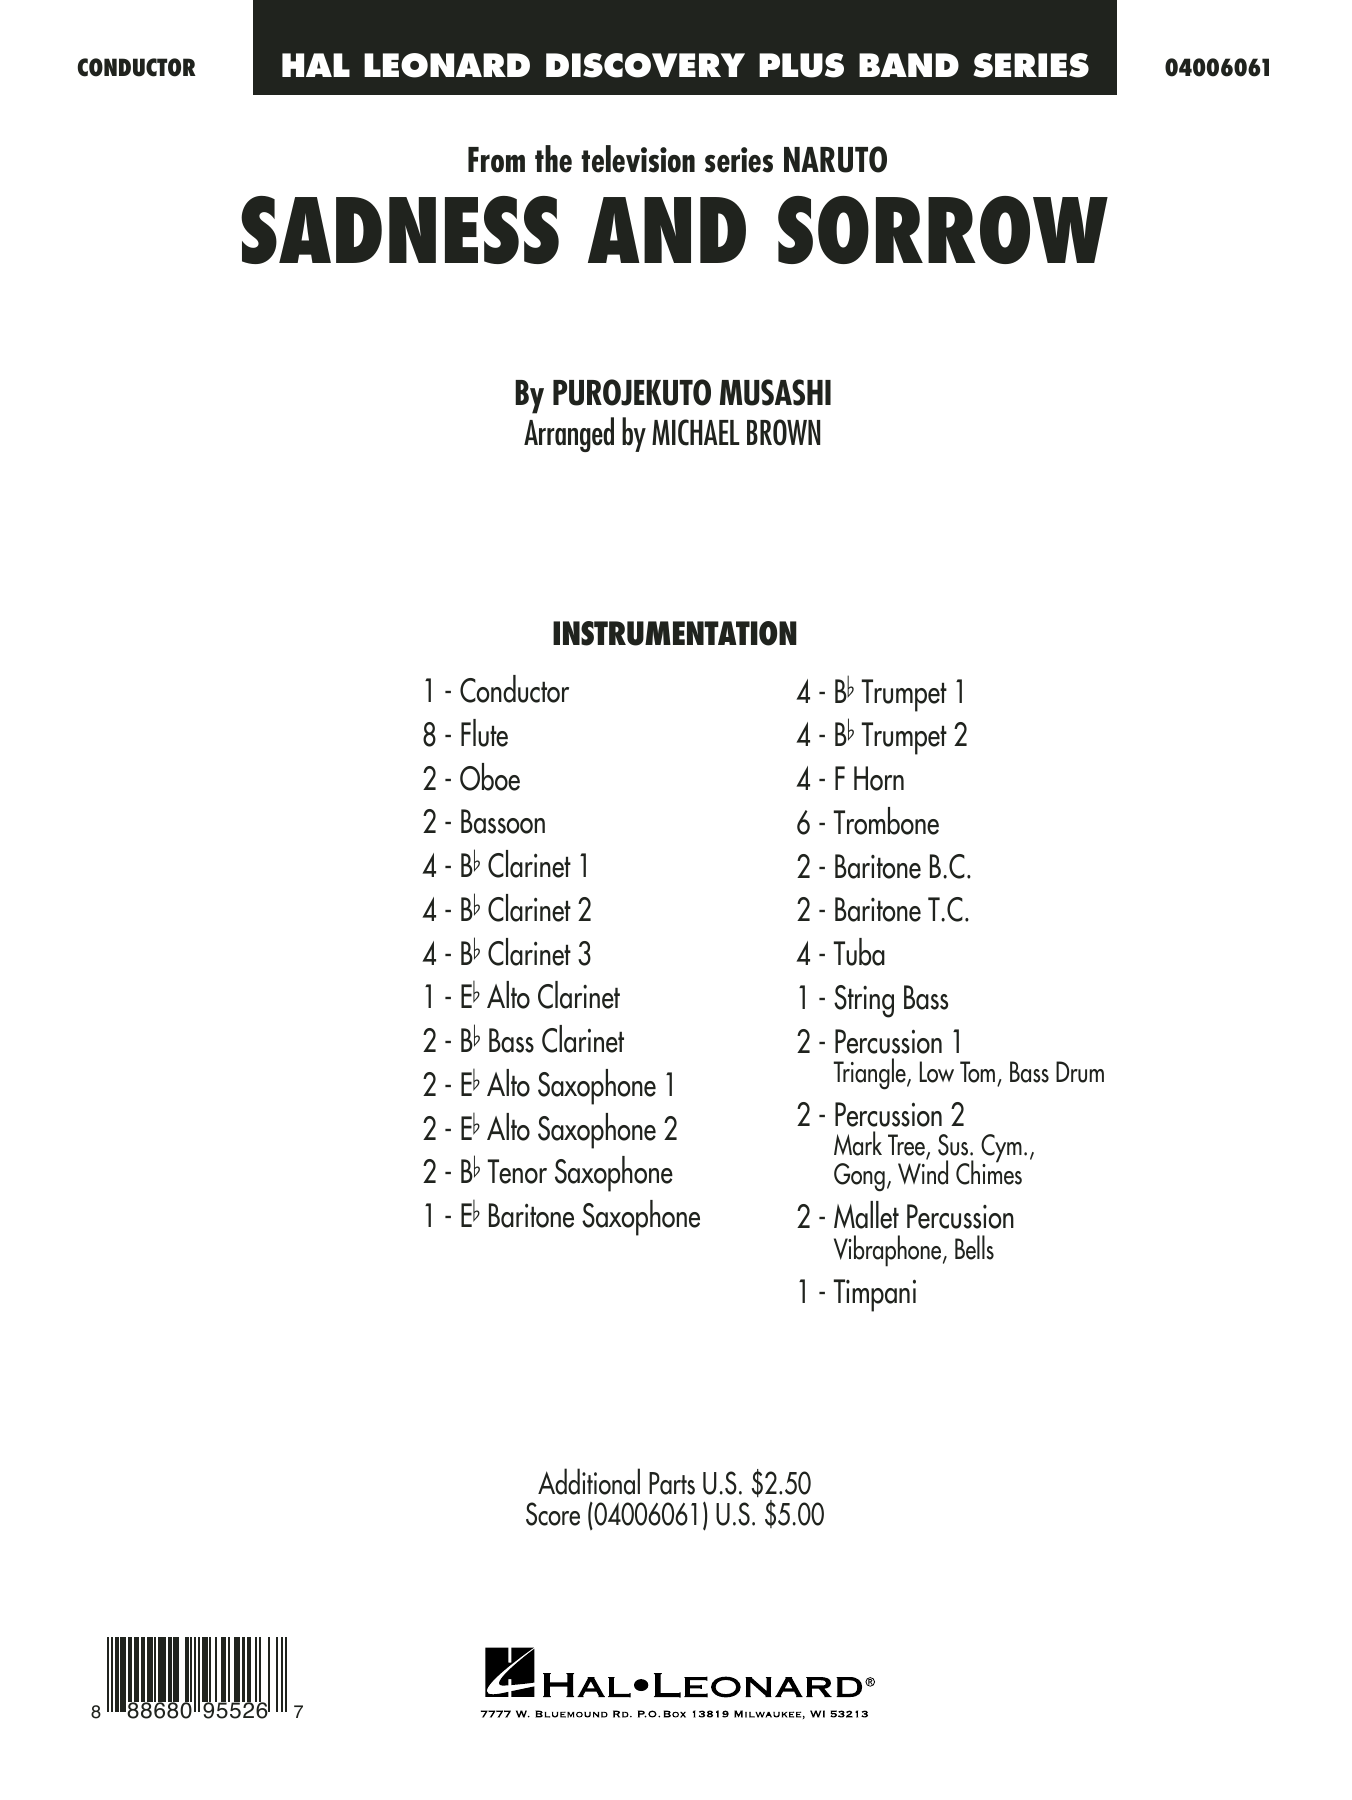 Taylor Davis Sadness and Sorrow (from Naruto) (arr. Michael Brown) - Conductor Score (Full Score) sheet music notes and chords. Download Printable PDF.